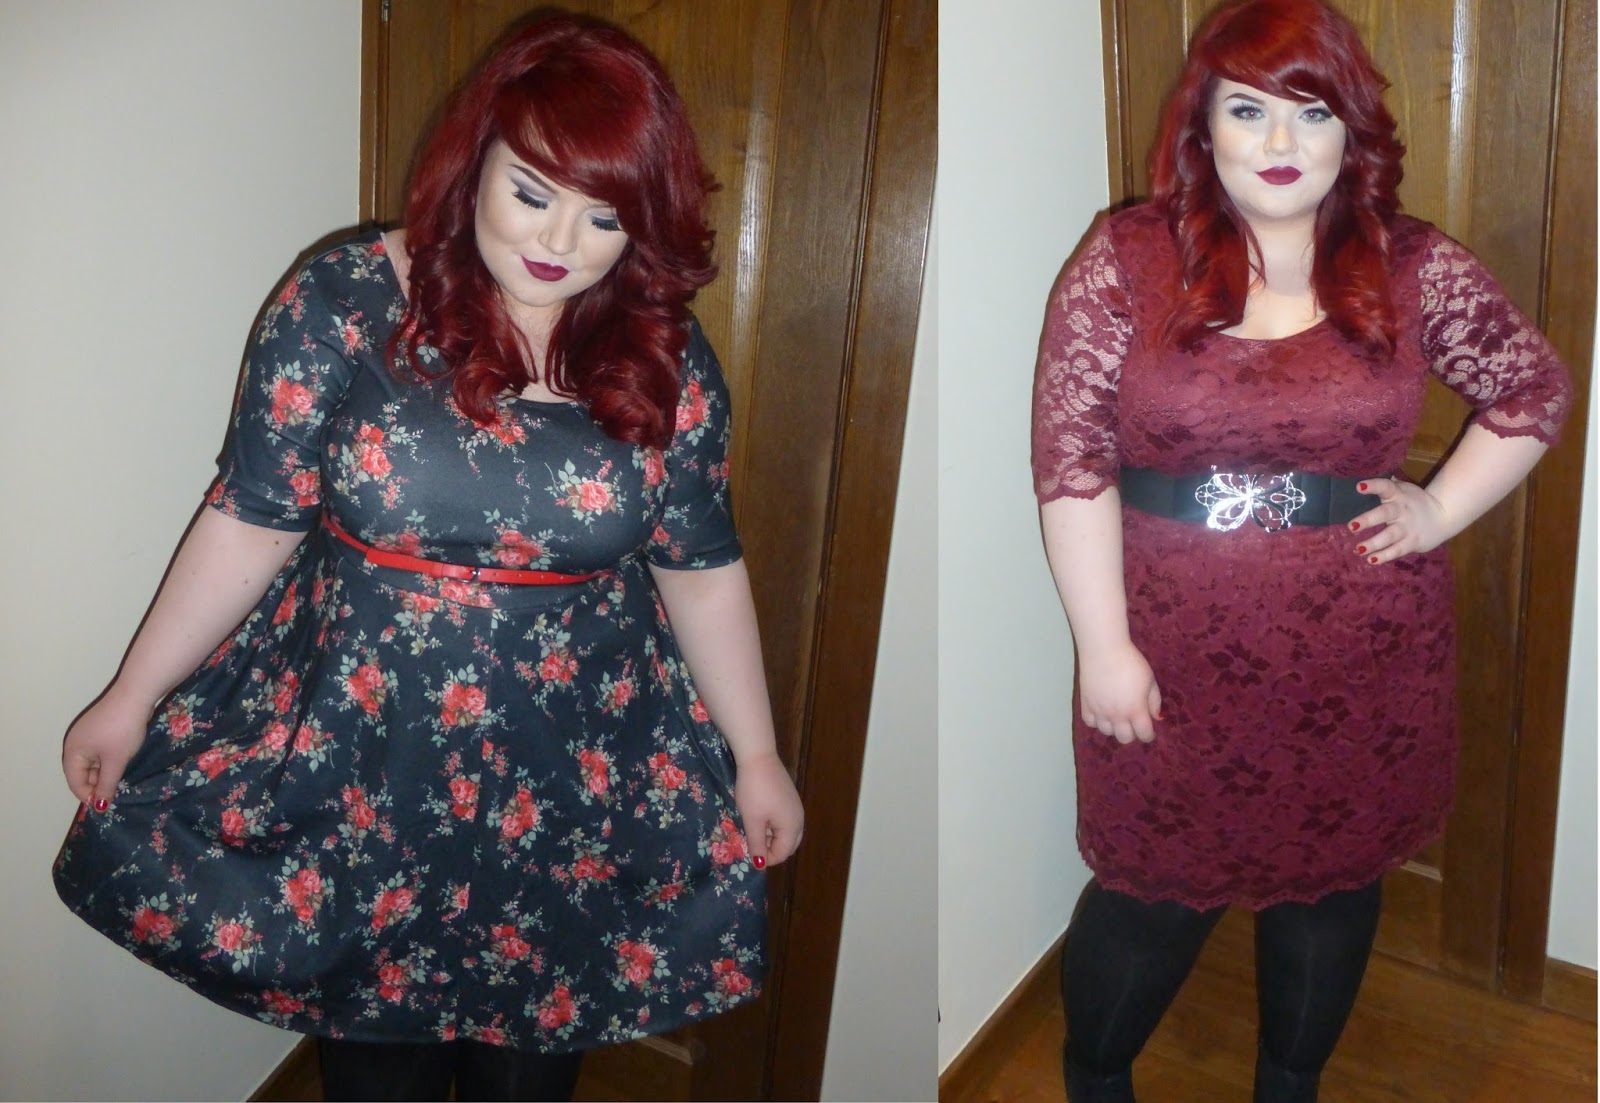 56762383f81 Boohoo Plus Size Range Review - She Might Be Loved